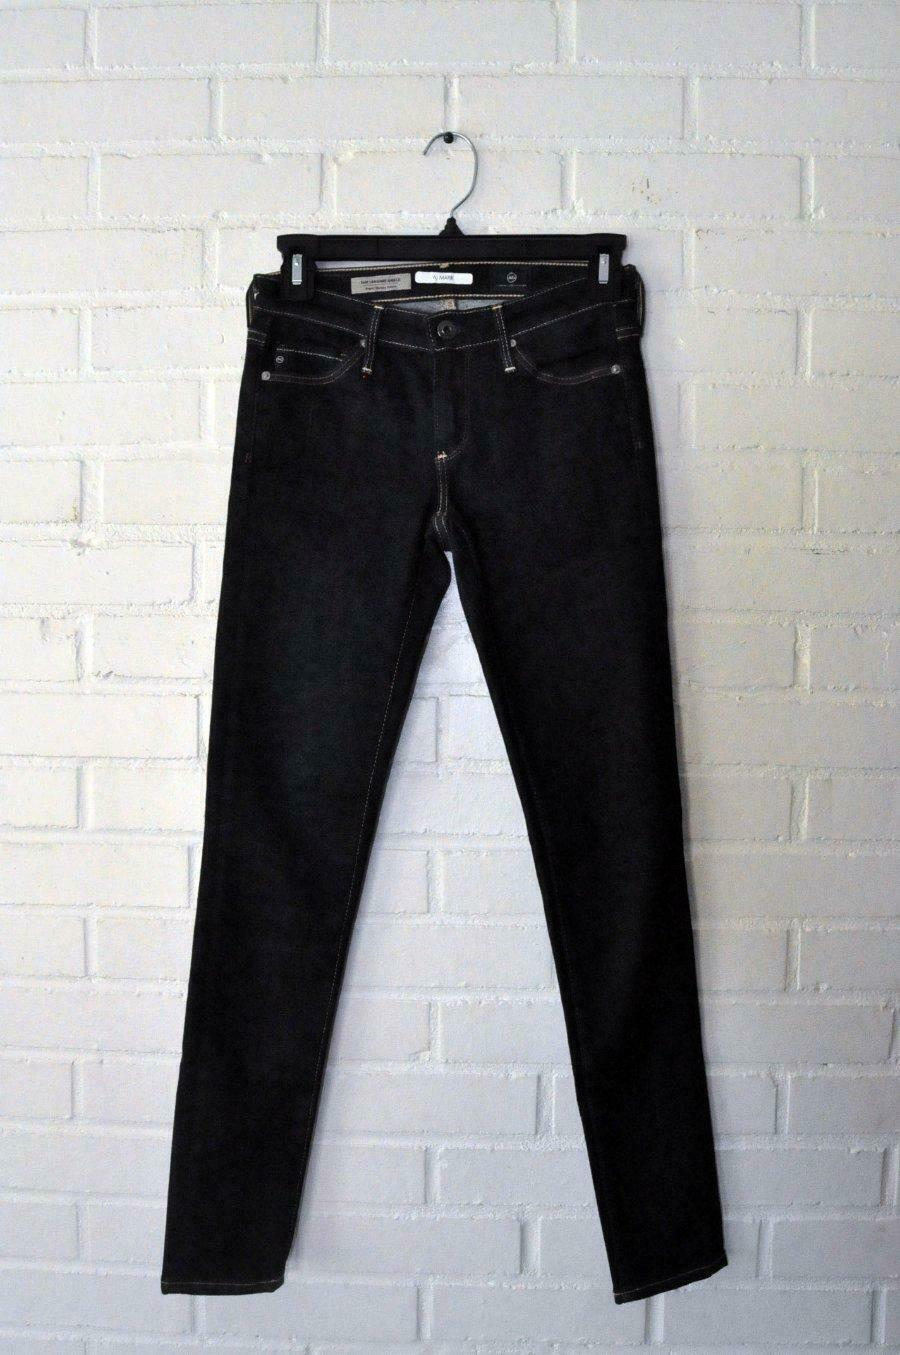 AG ADRIANO goldSCHMIED THE LEGGING ANKLE SUPER SKINNY FIT JEANS in GAL Dark wa